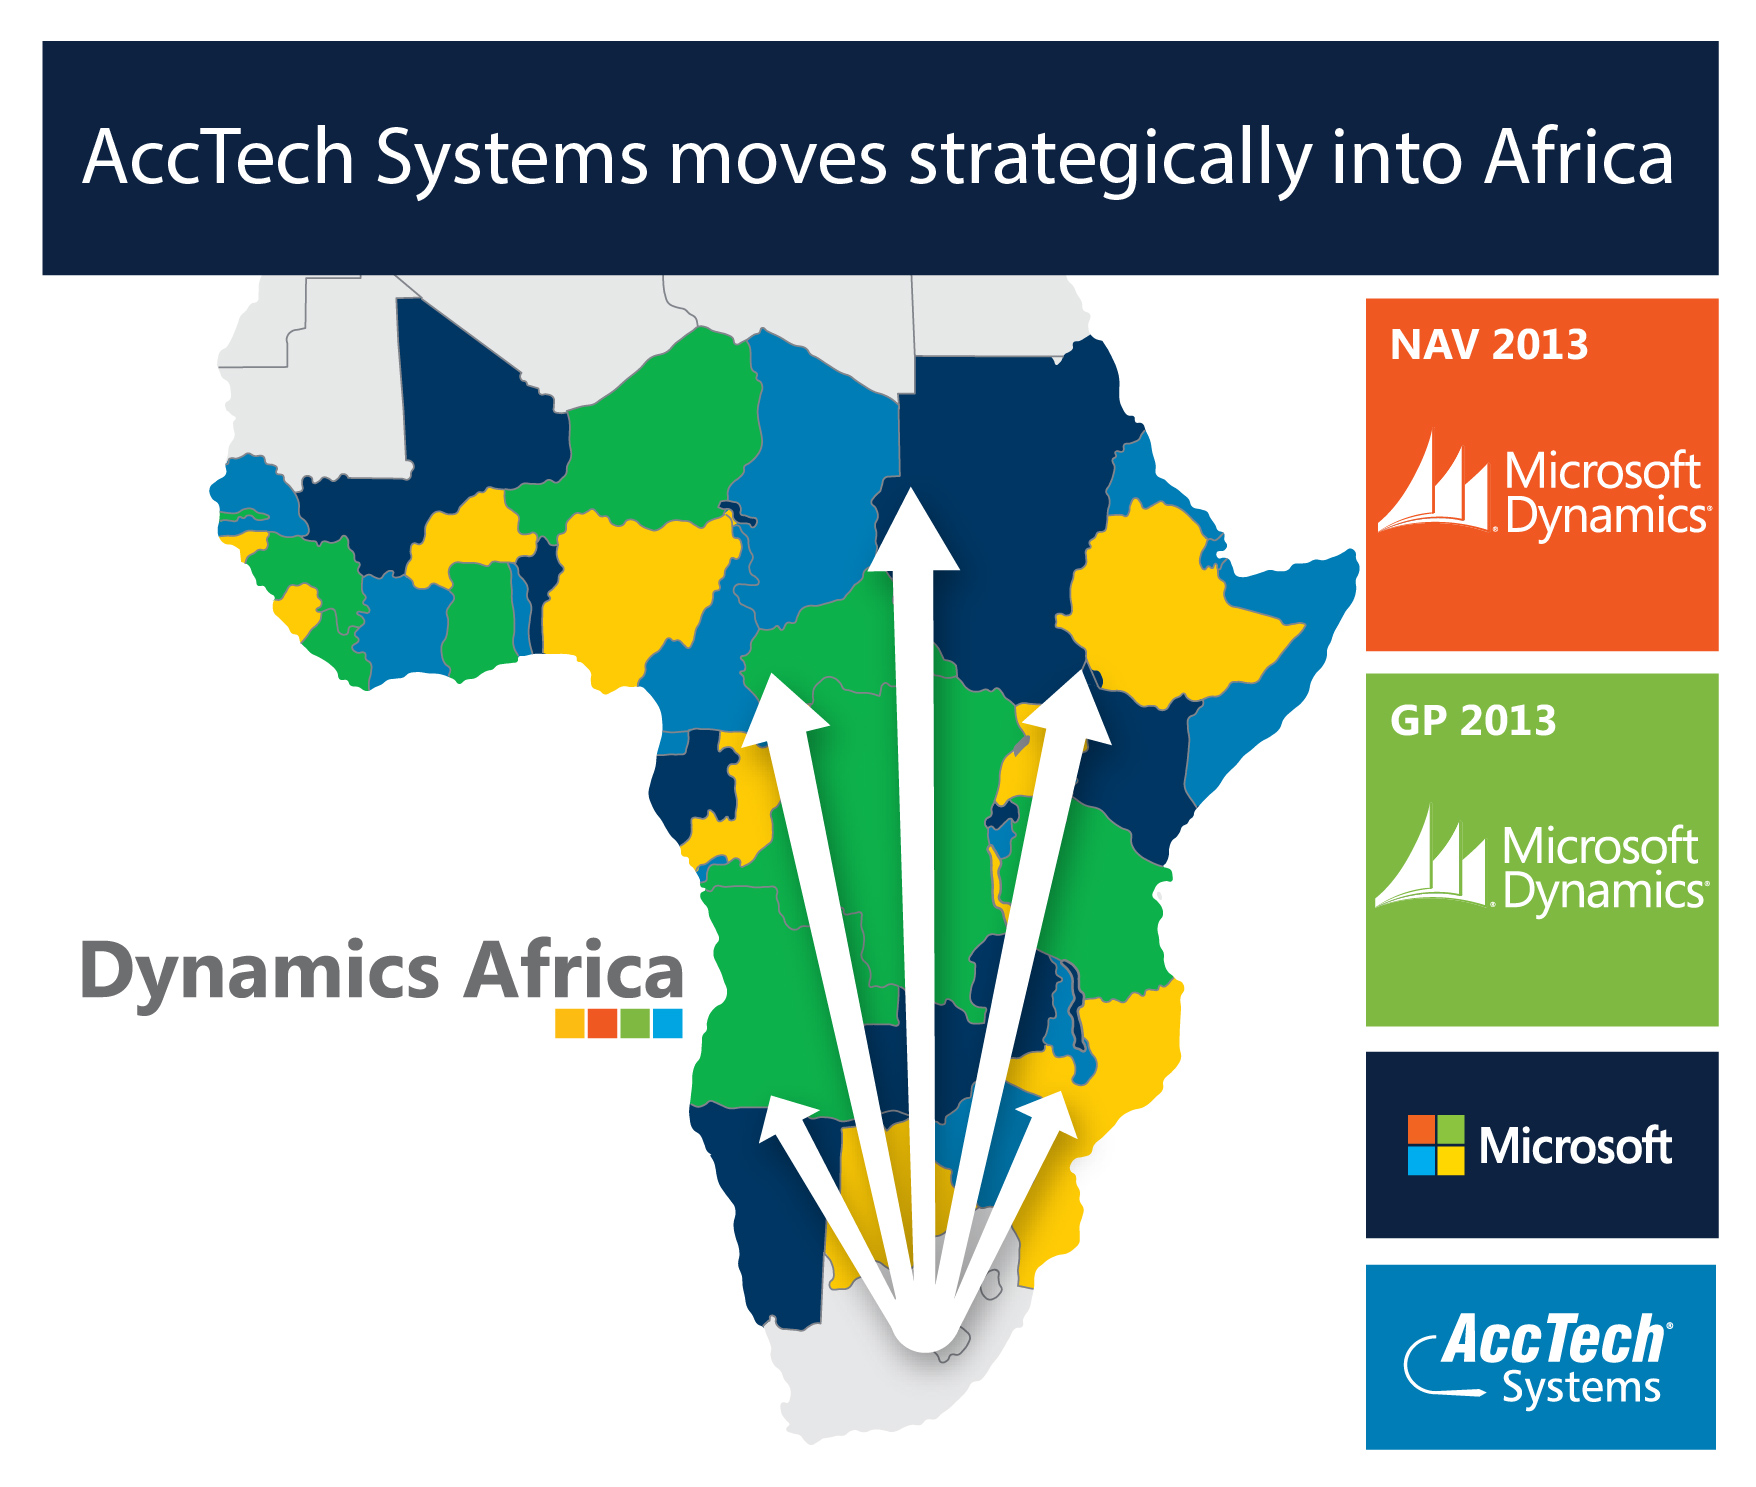 AccTech Moves Strategically 2